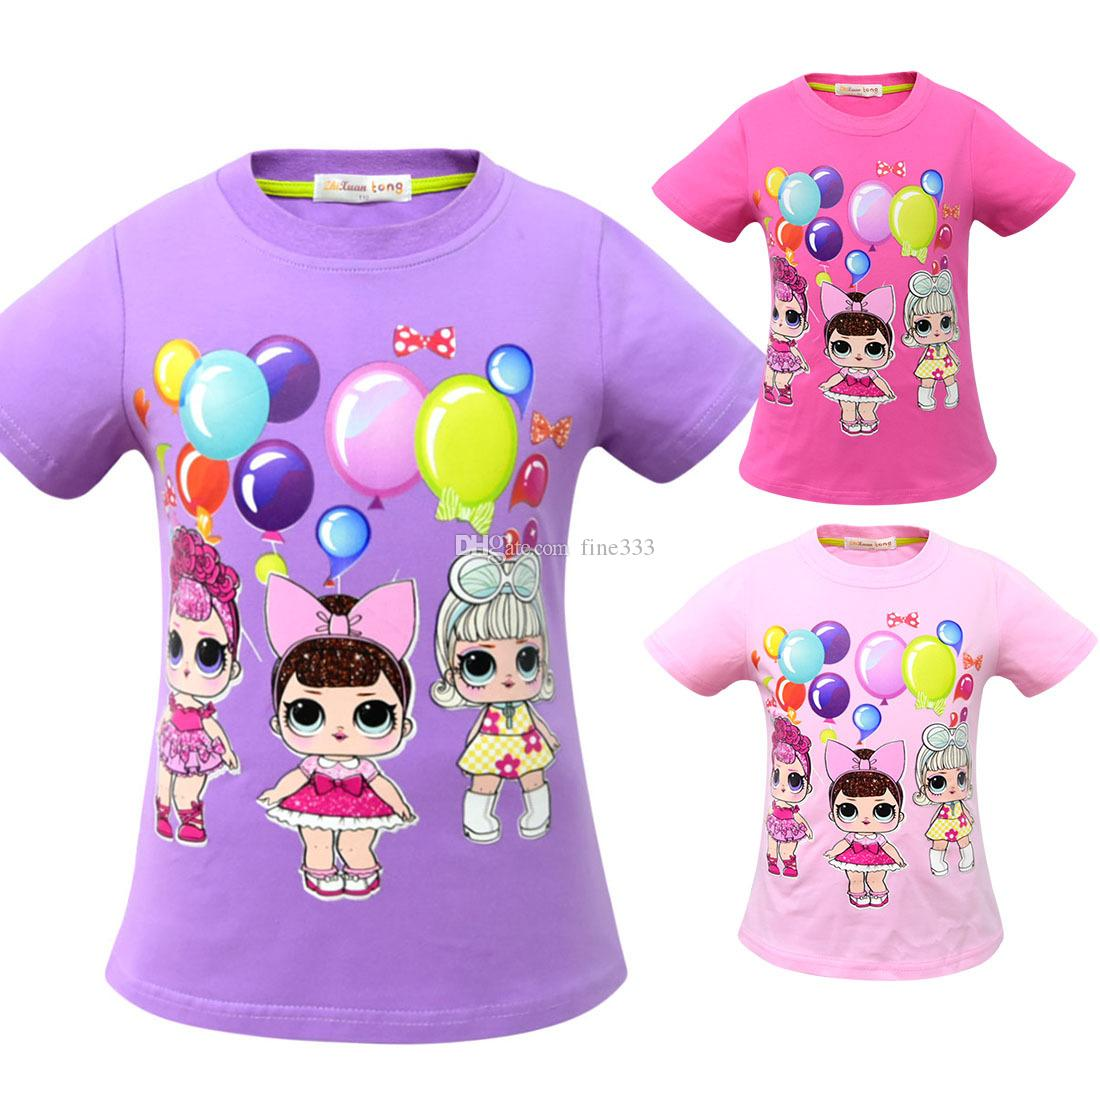 T shirt 3D color Printing New Cartoon Girls Short sleeve T-shirt Summer Breathable children's wear Kids Children Outwear Top Clothing 2241